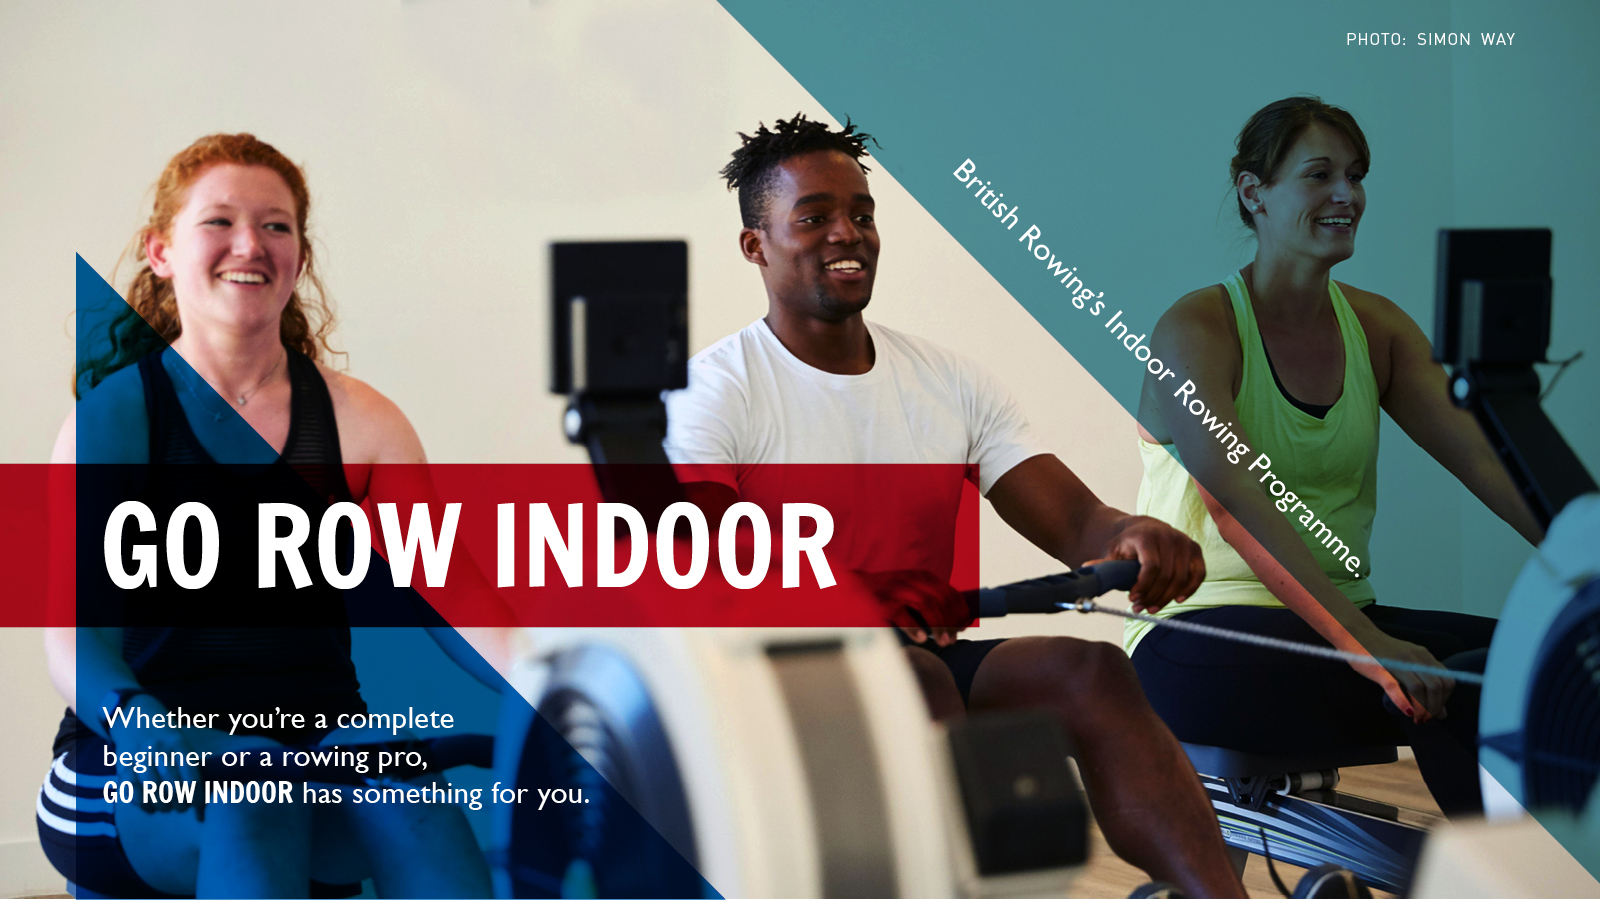 British Rowing launches Go Row Indoor at industry forum